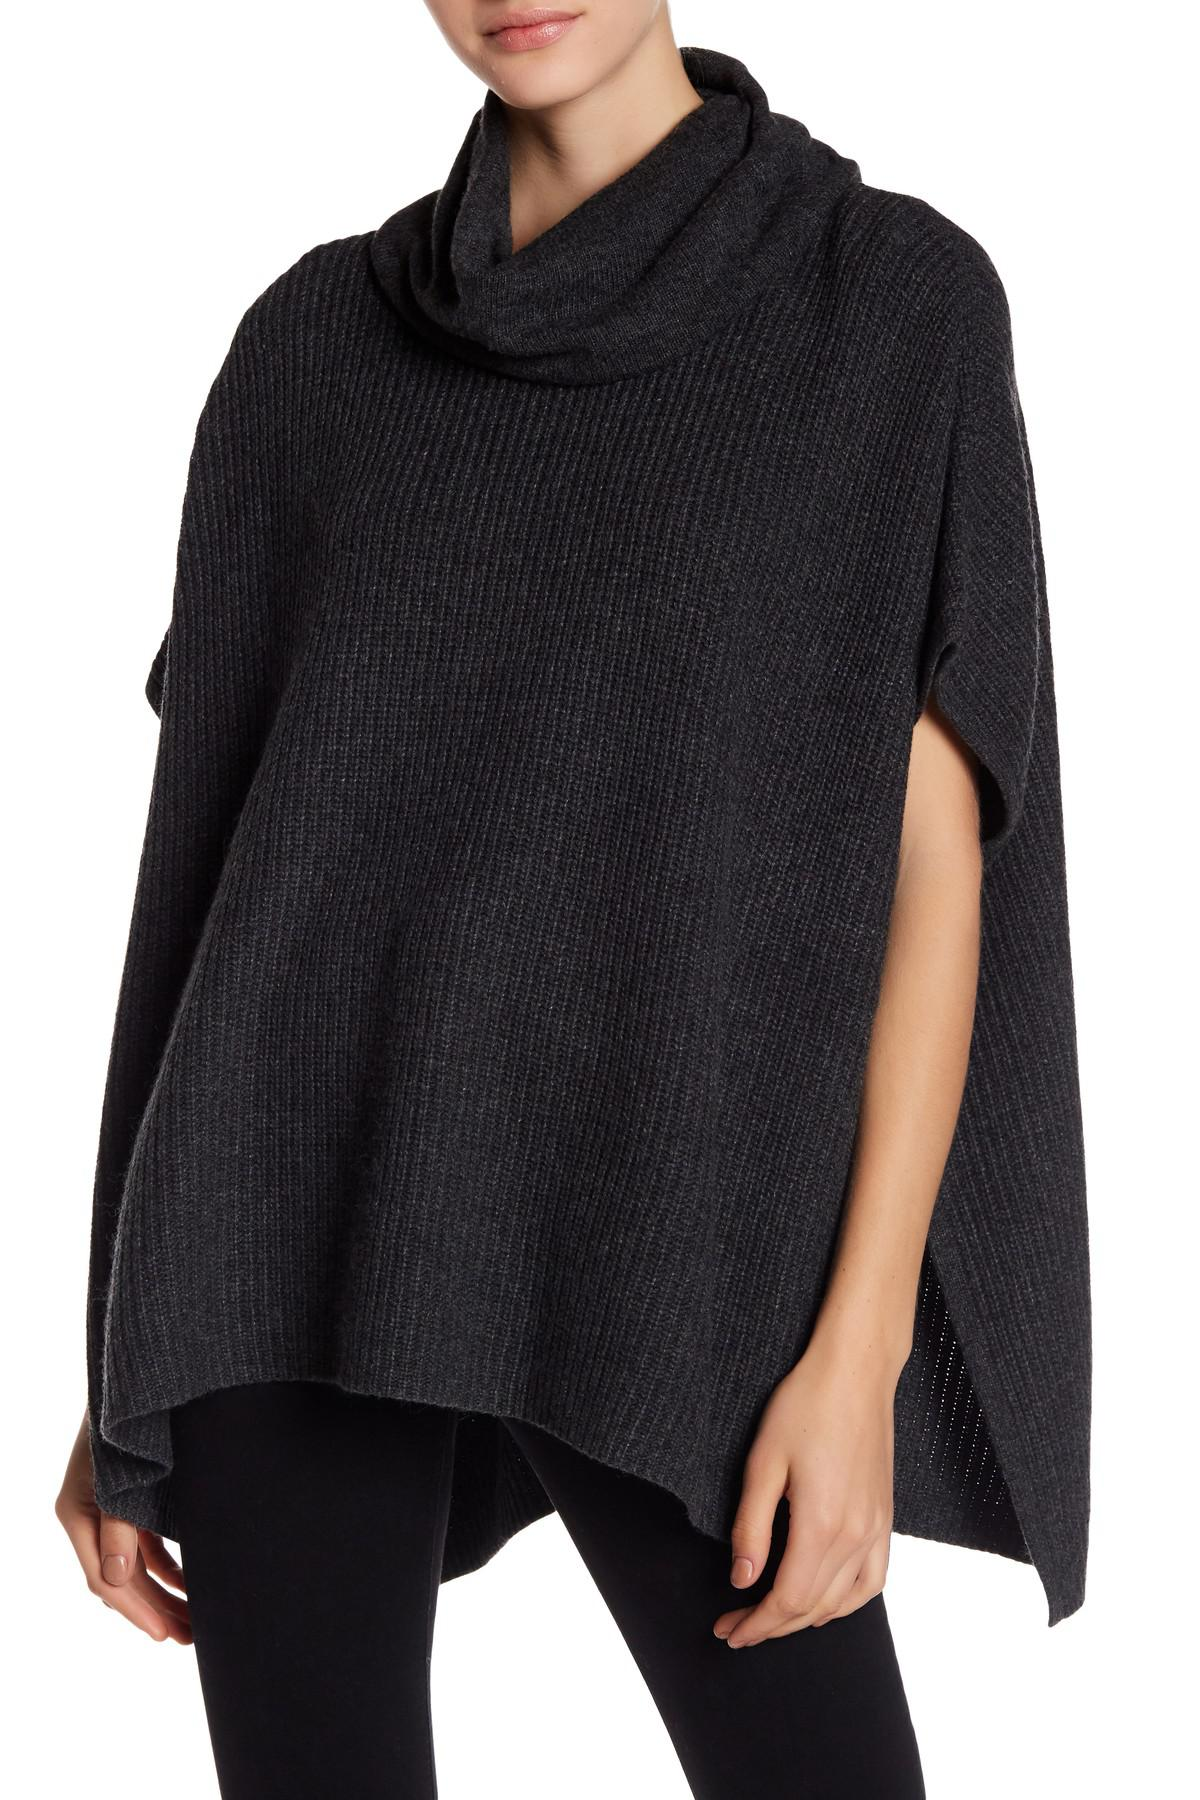 Lucky brand Cowl Neck Poncho Sweater in Black | Lyst